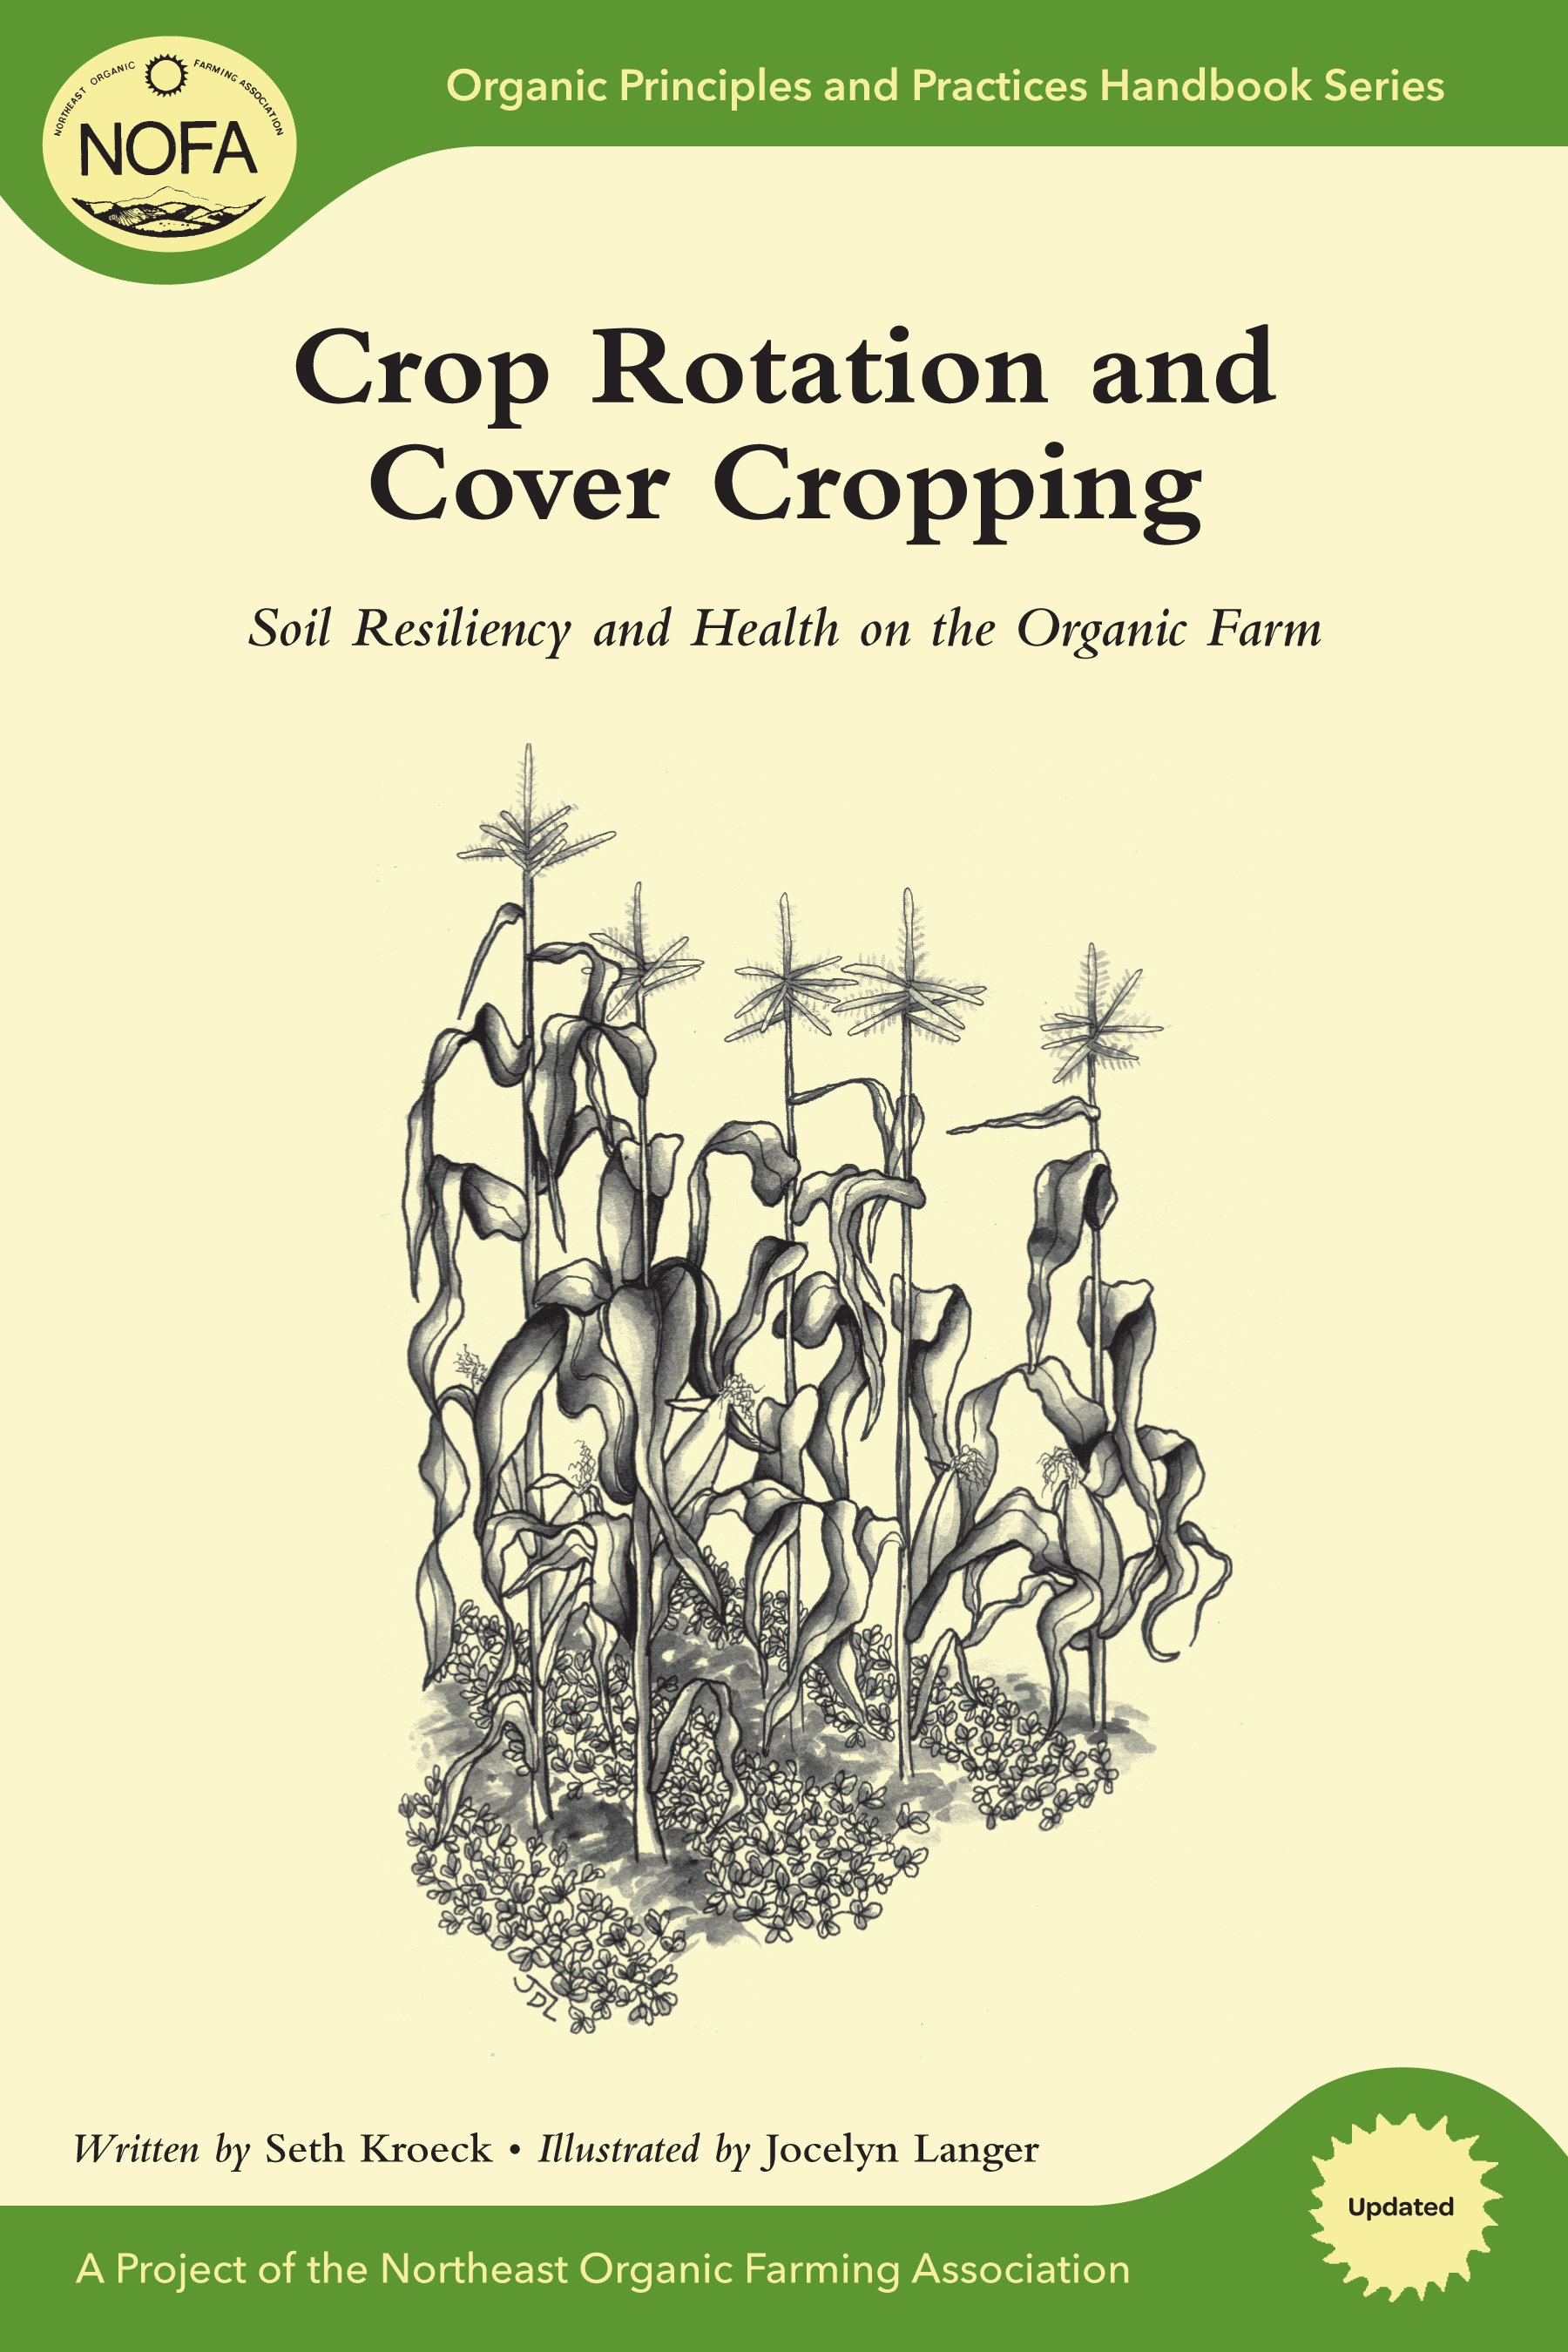 Crop Rotation and Cover Cropping